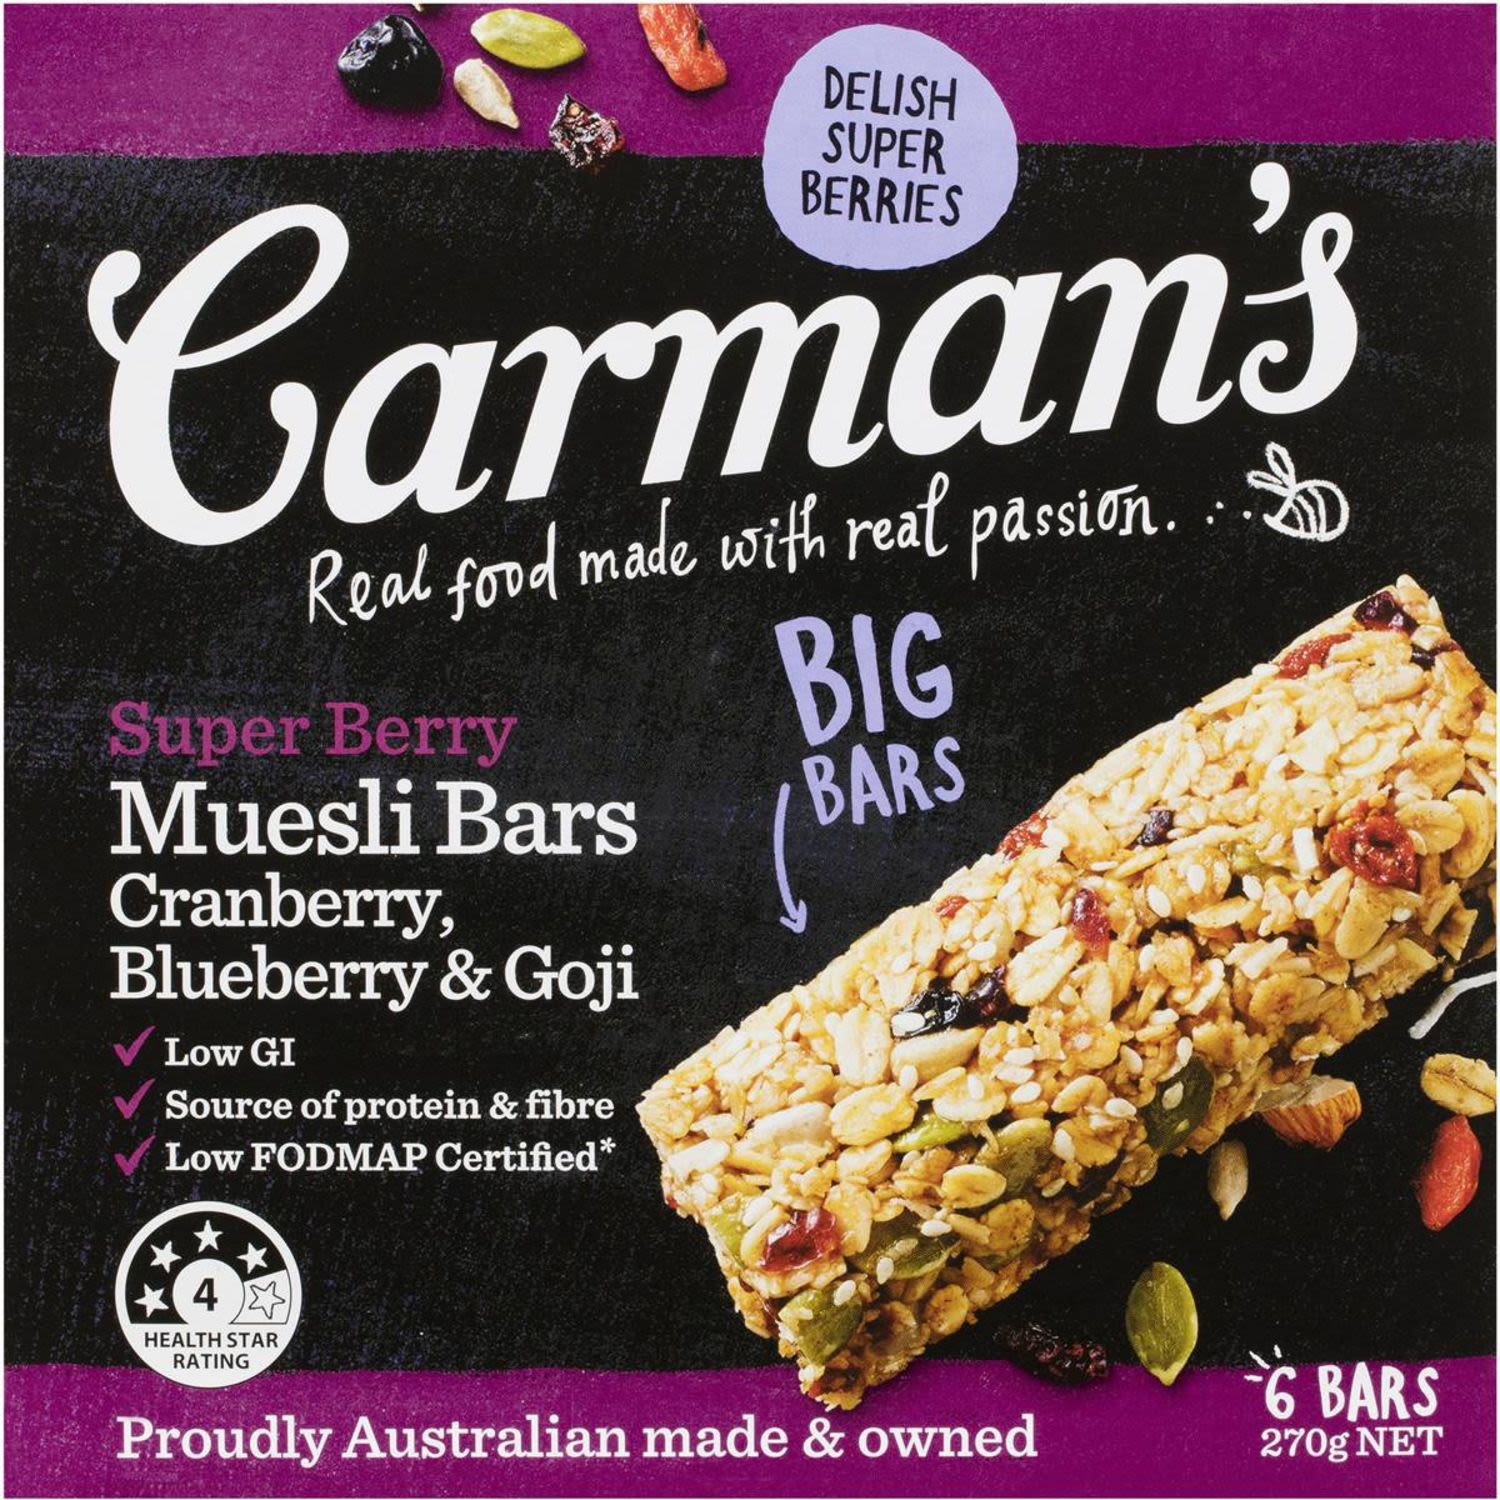 Carman's Super Berry Muesli Bars are full of oaty goodness, crunchy coconut and gourmet cranberries, blueberries and goji berries, making for a downright delicious snack that leaves you feeling, well, super!